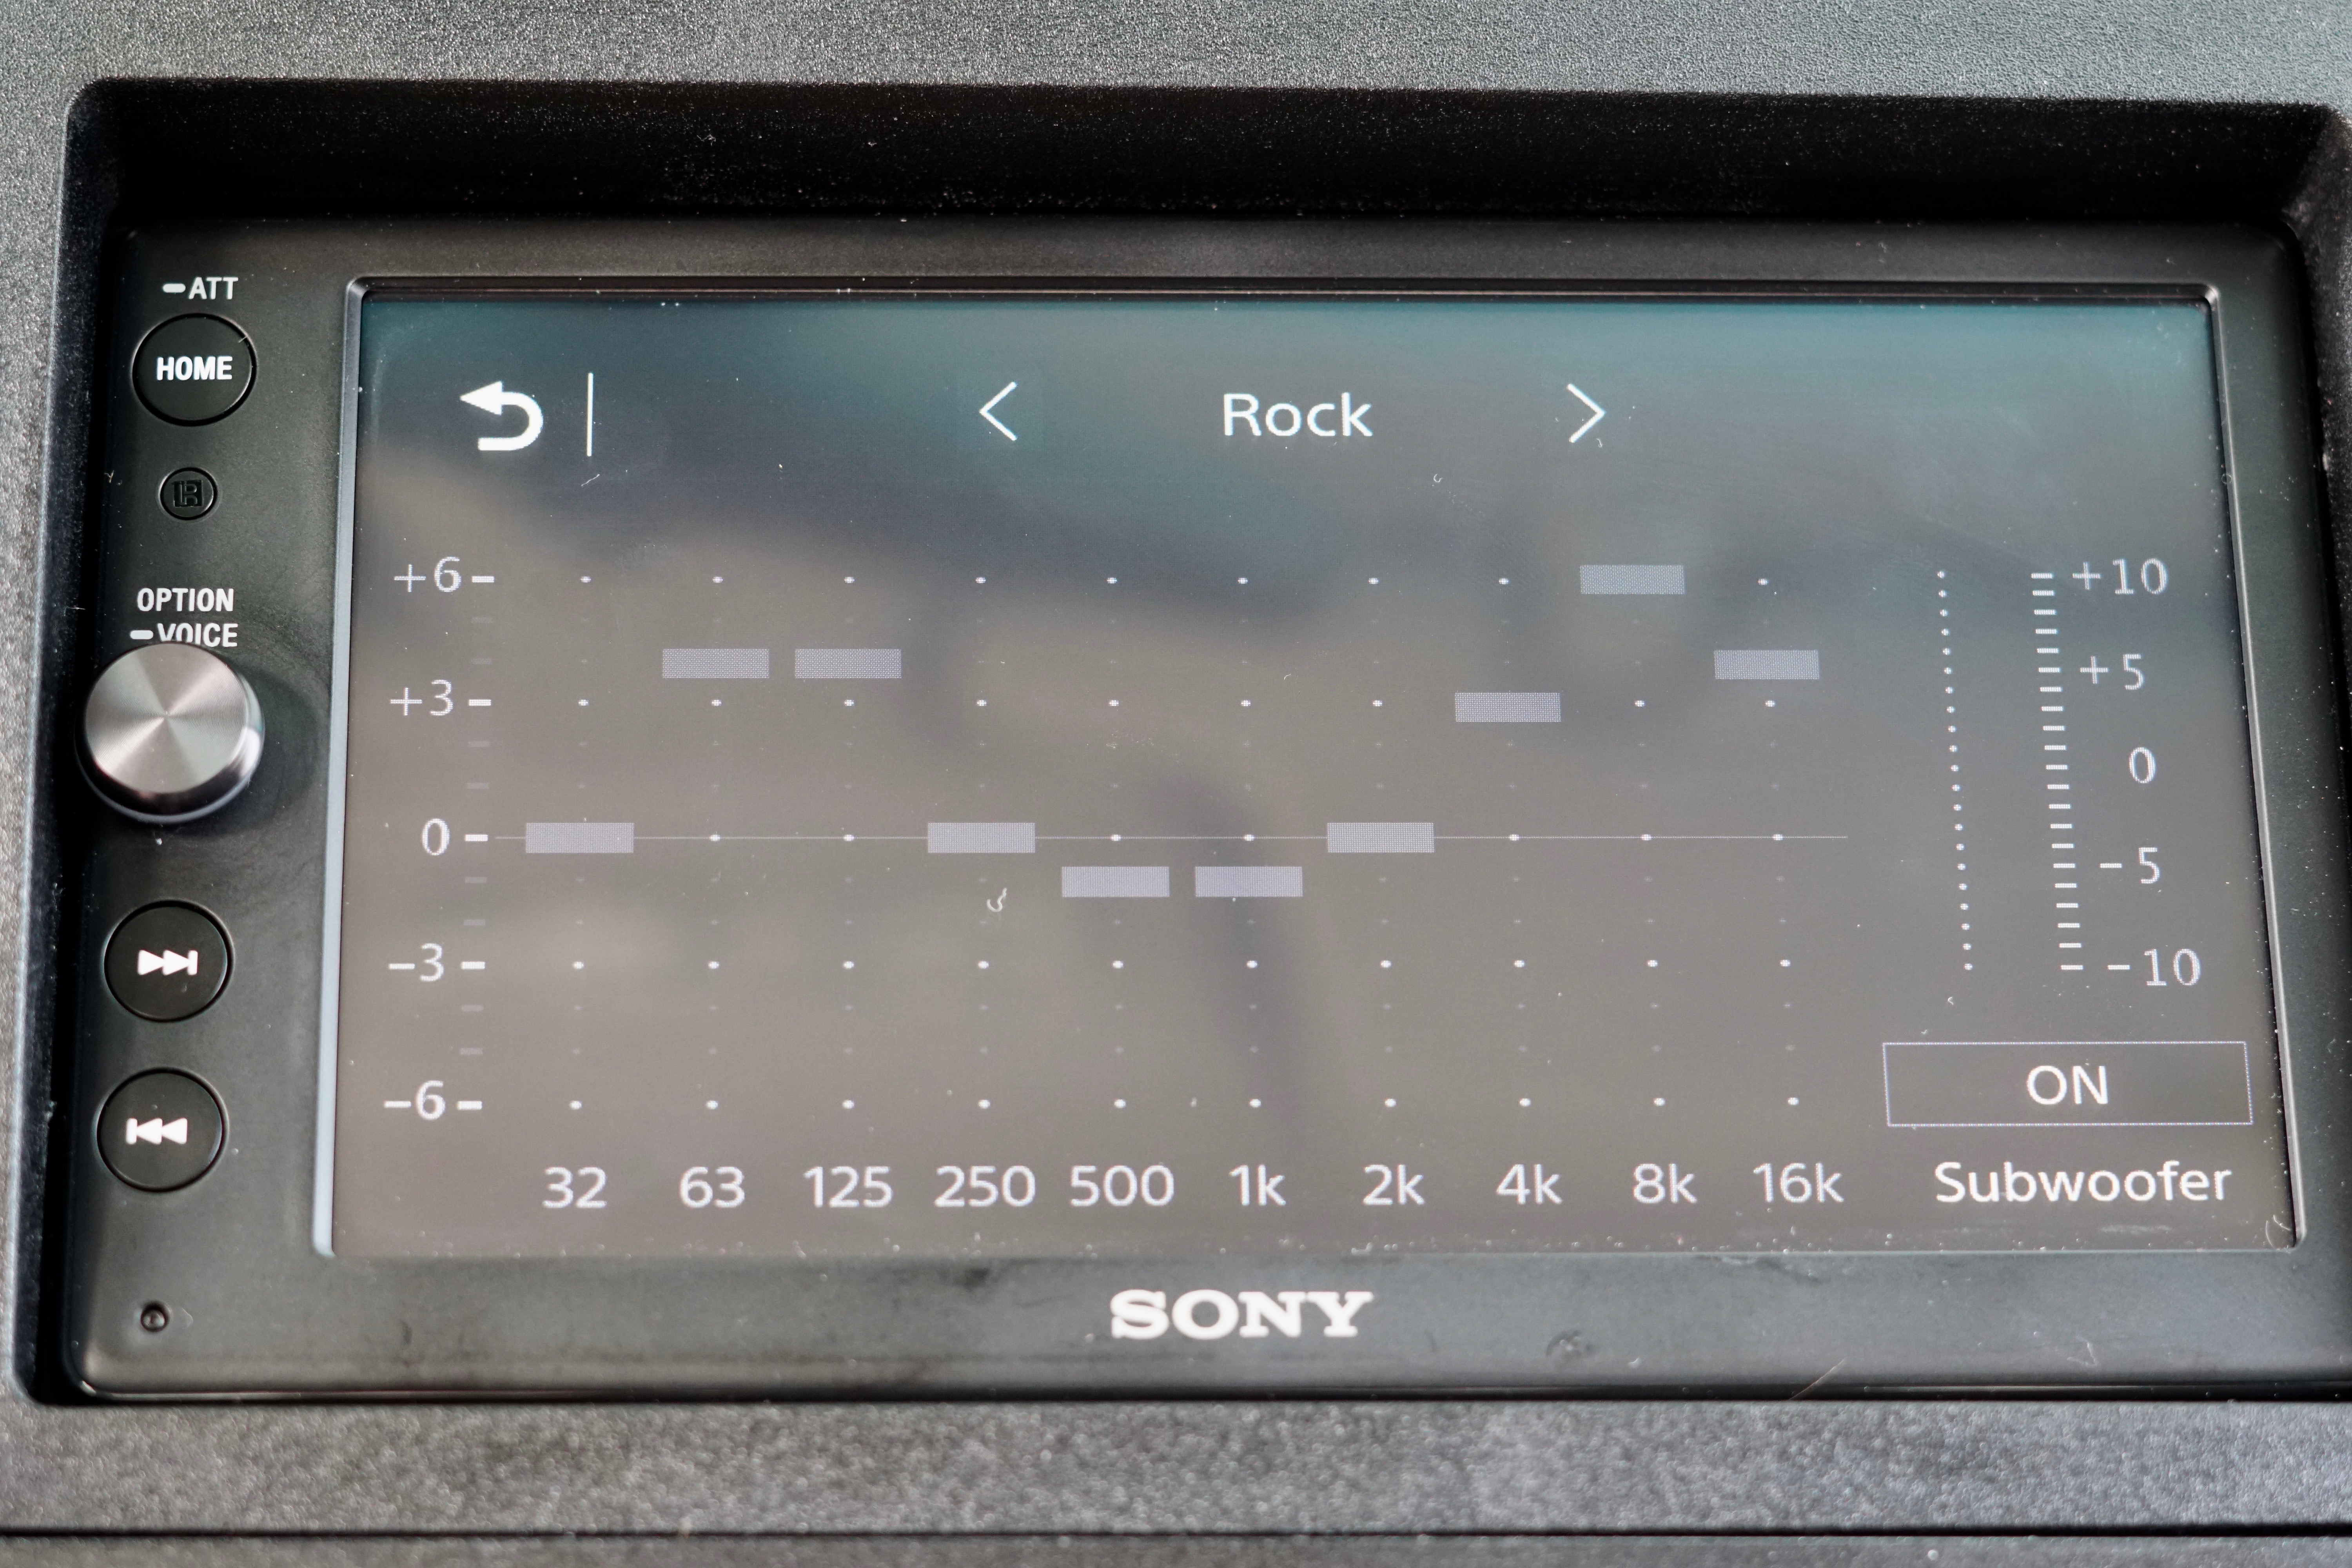 Sony Xav C1 Wiring Diagram Info Cdx Gt130 Get Free Image About Review S Ax100 Carplay Receiver Pairs Tasteful Design With Rh 9to5mac Com Car Radio Harness Stereo